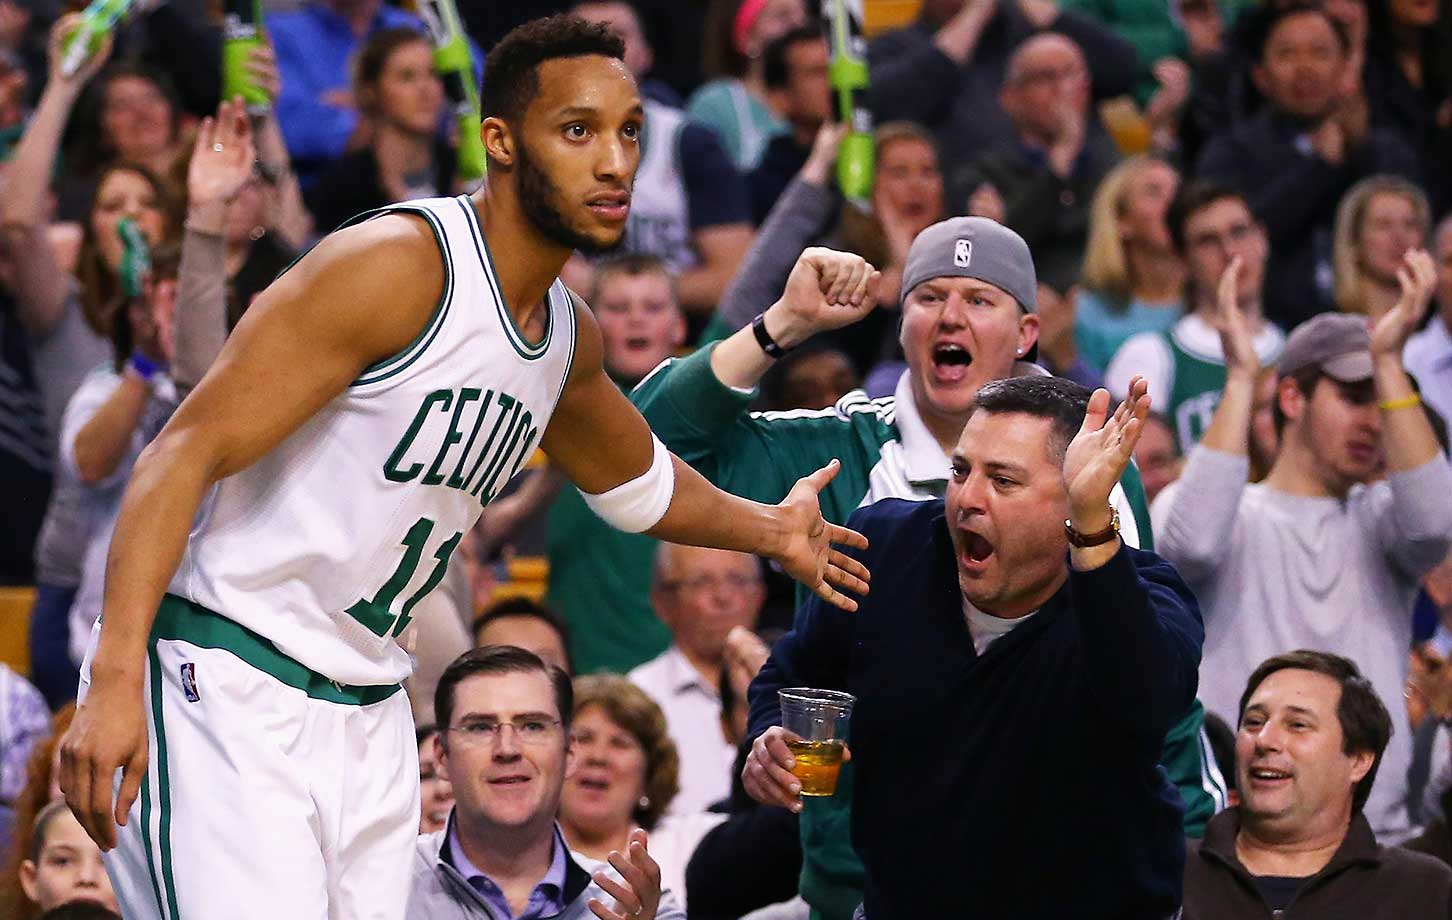 Evan Turner slyly asks for a high-five from a Boston Celtics fan.